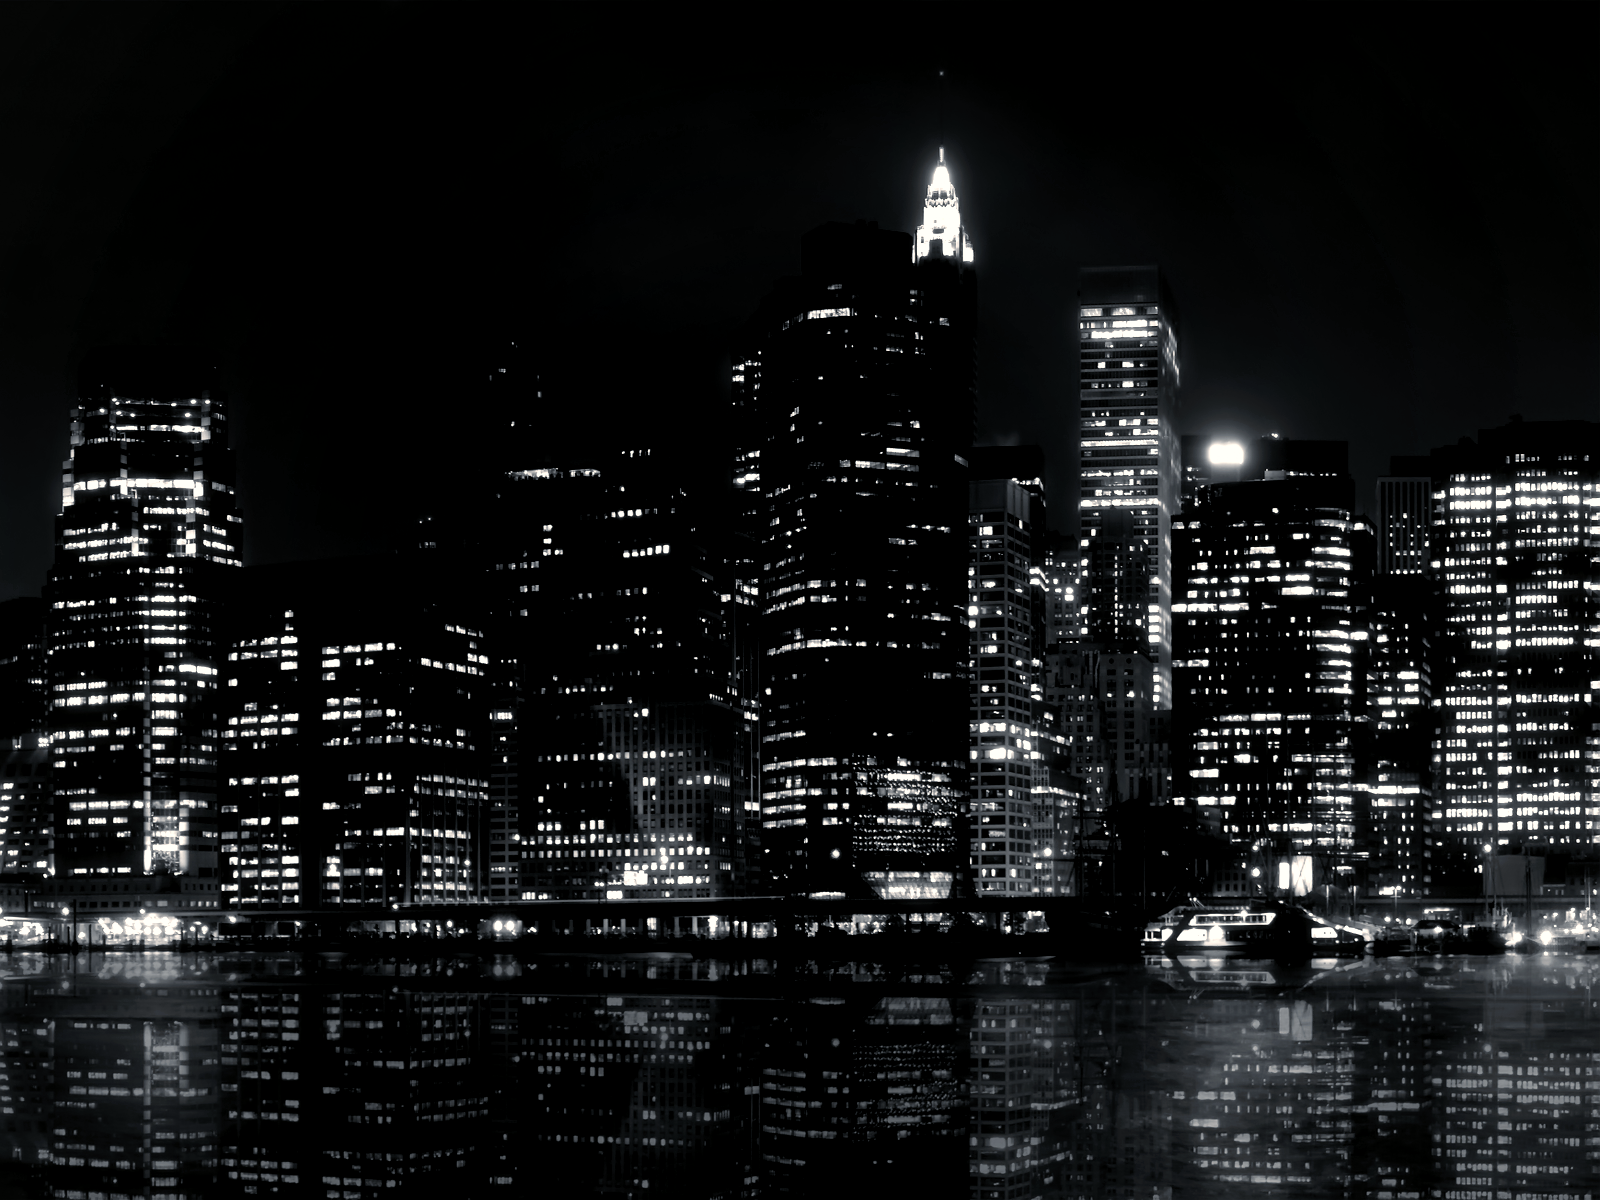 Black and White City Northern River wallpaper  Republican Suggests Shooting UK Public Workers